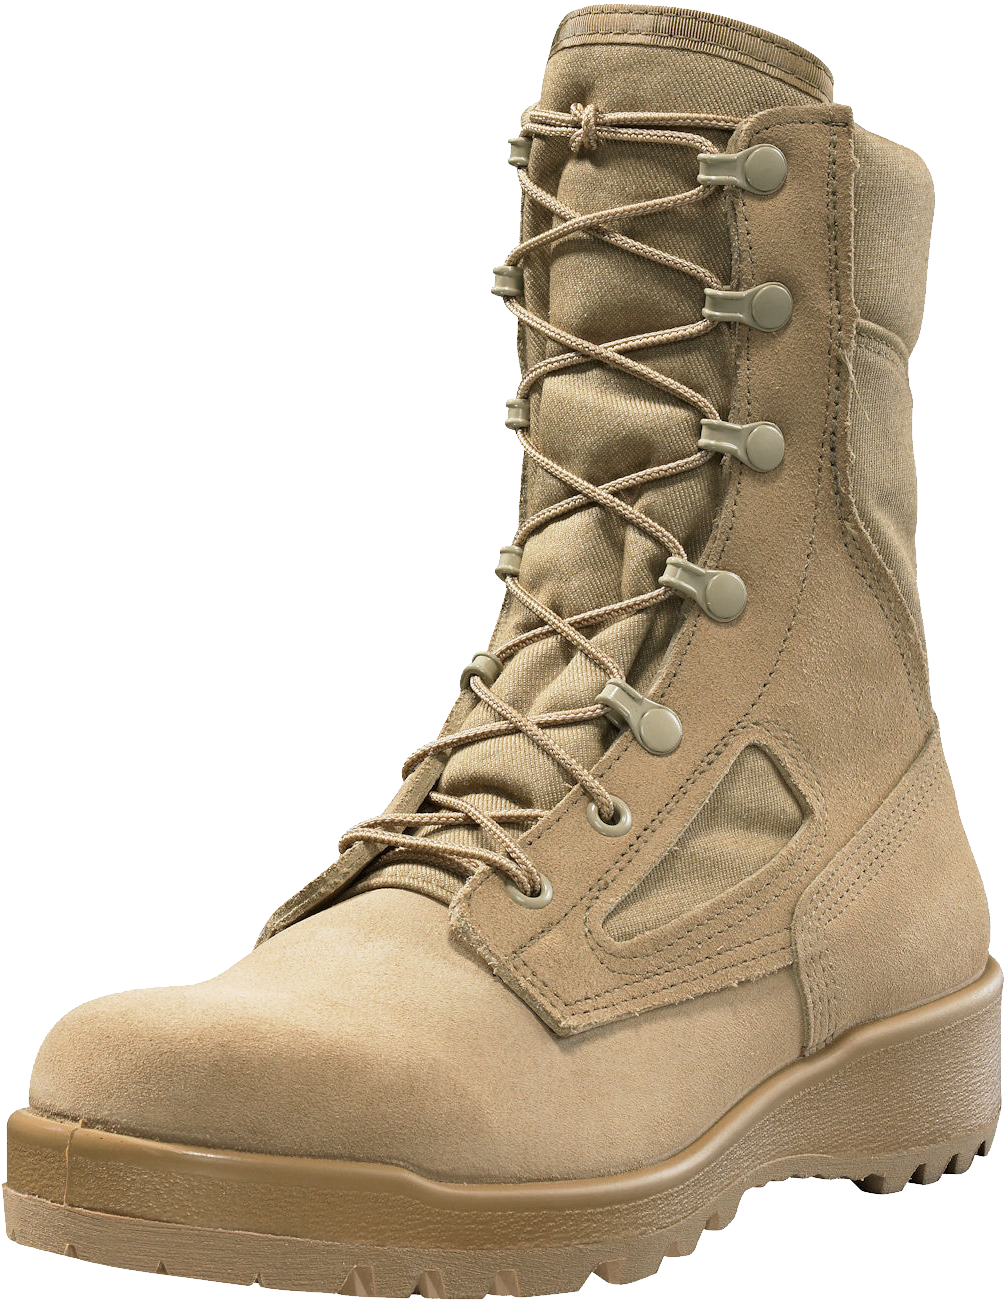 Boots PNG - 13580